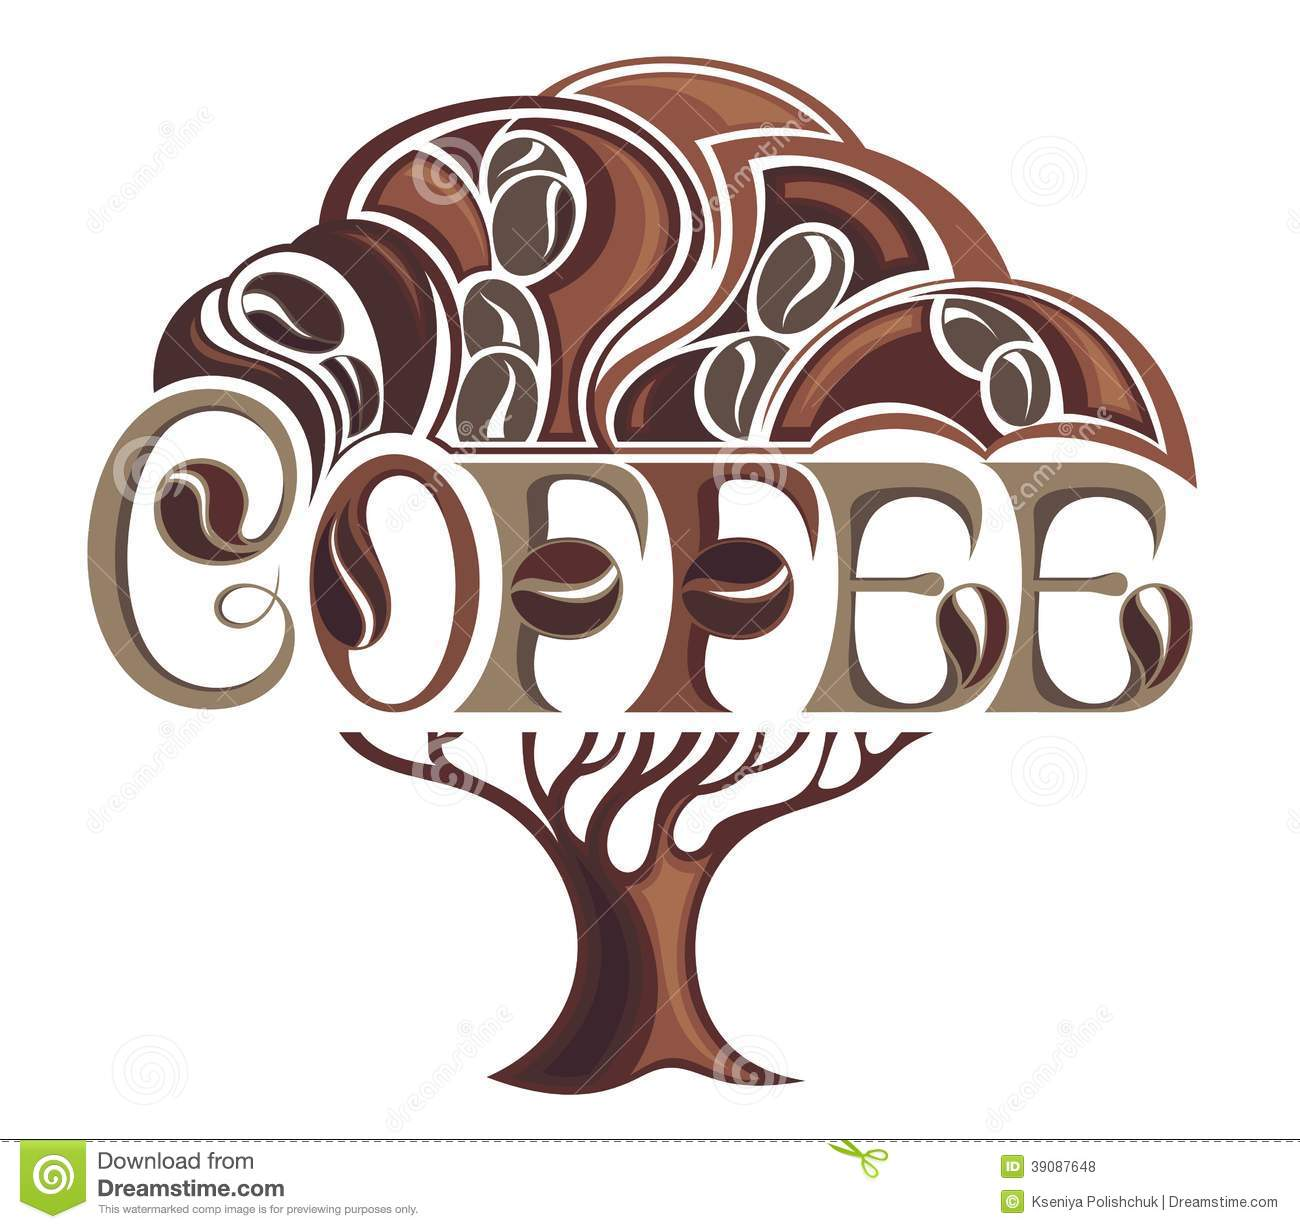 Coffee tree design stock vector. Illustration of isolated ...